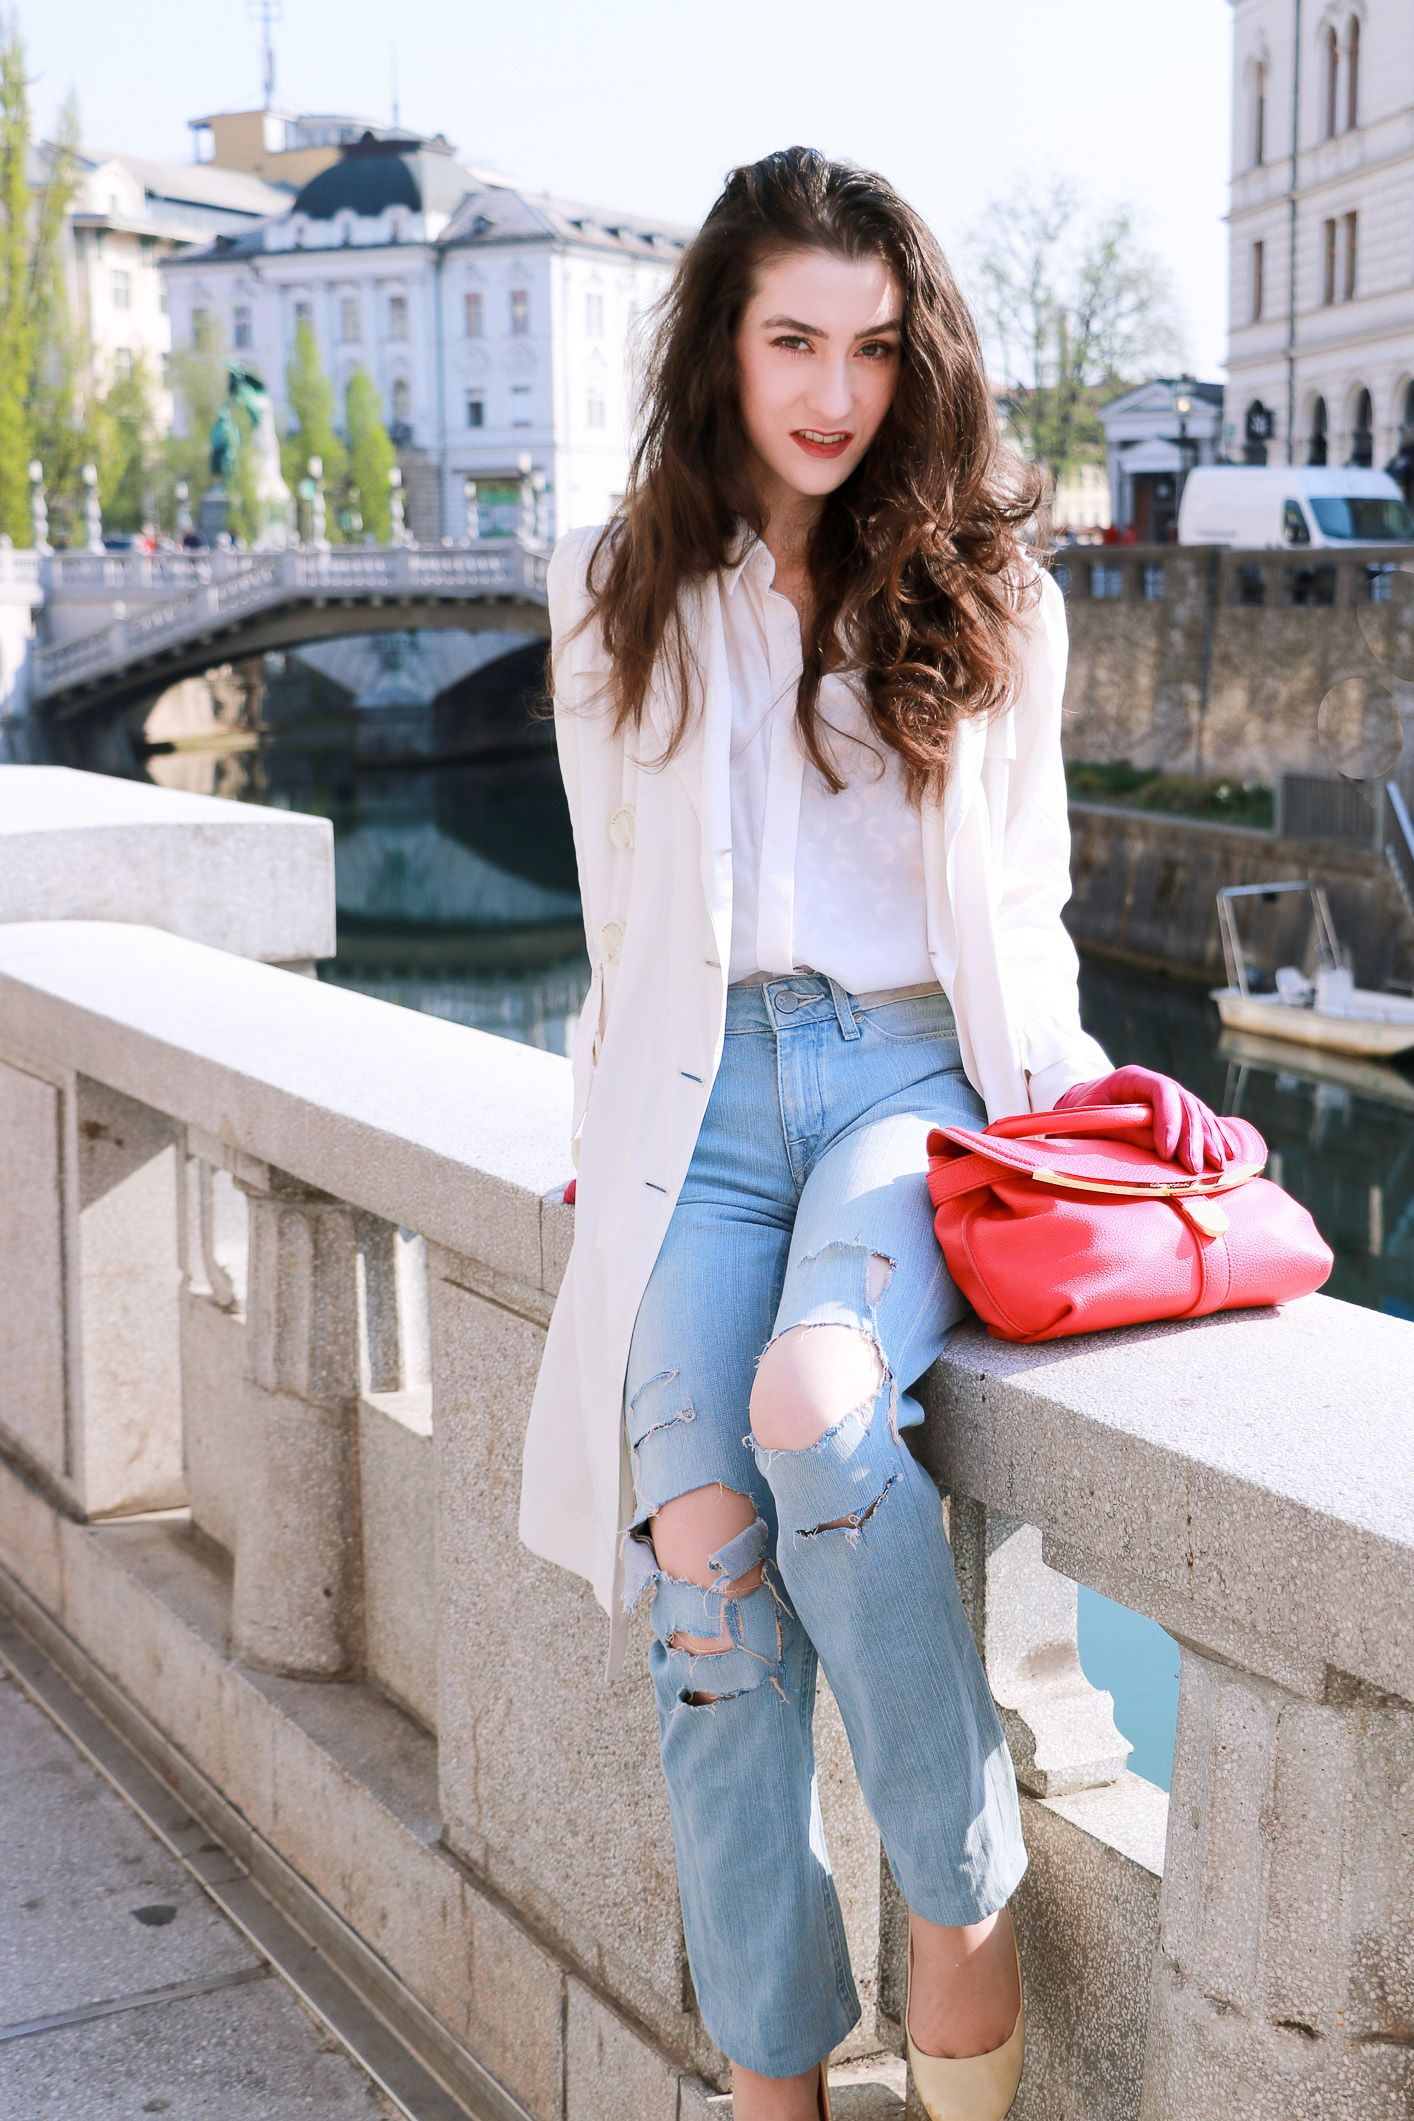 979352791de3 Fashion blogger Veronika Lipar of Brunette From Wall Street sharing how to  wear light blue ripped jeans